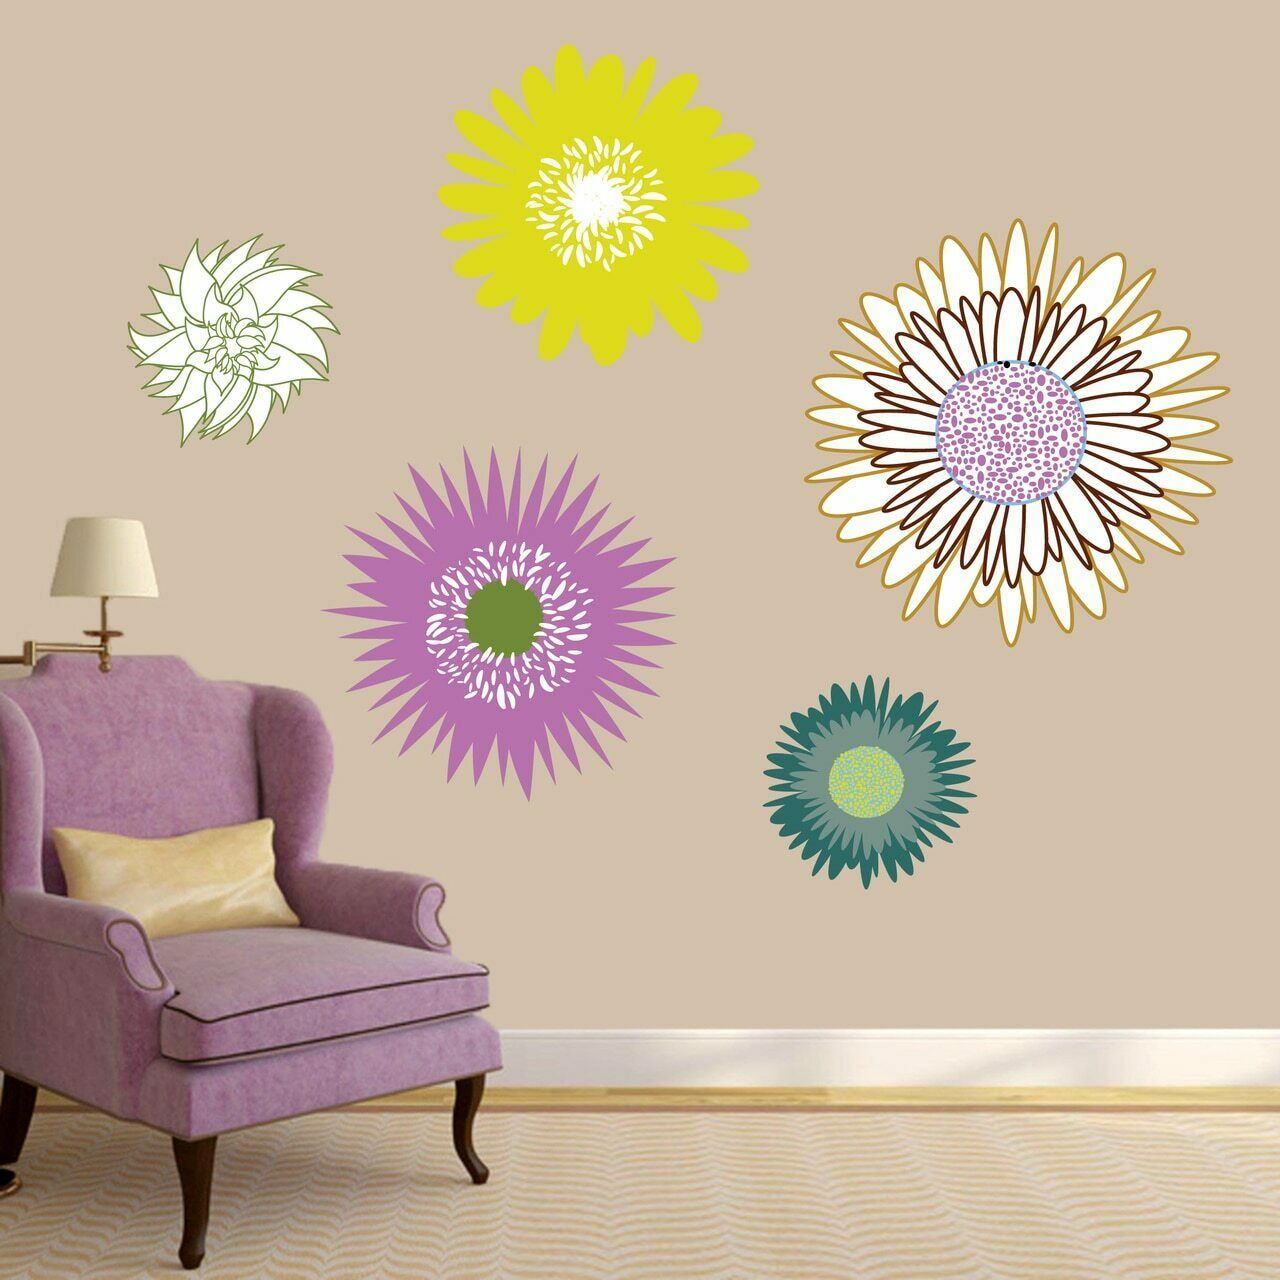 Wildflowers Printed Wall Decal Set - Flowers, Printed Decal, Wall Accent, Decal